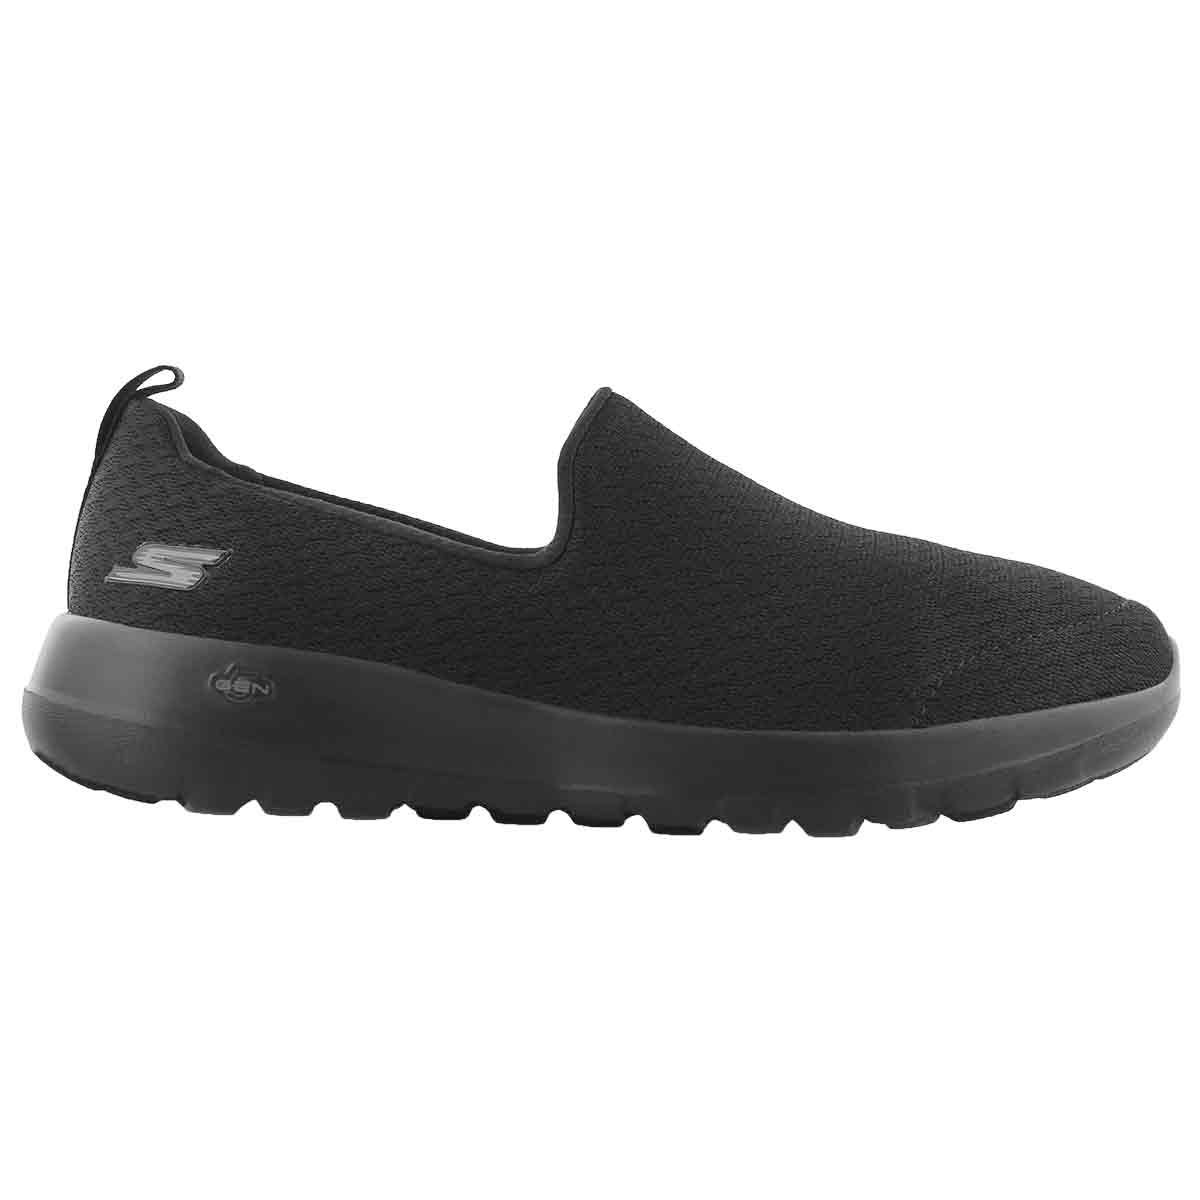 Lds GOwalk Joy Rejoice blk slip on shoe